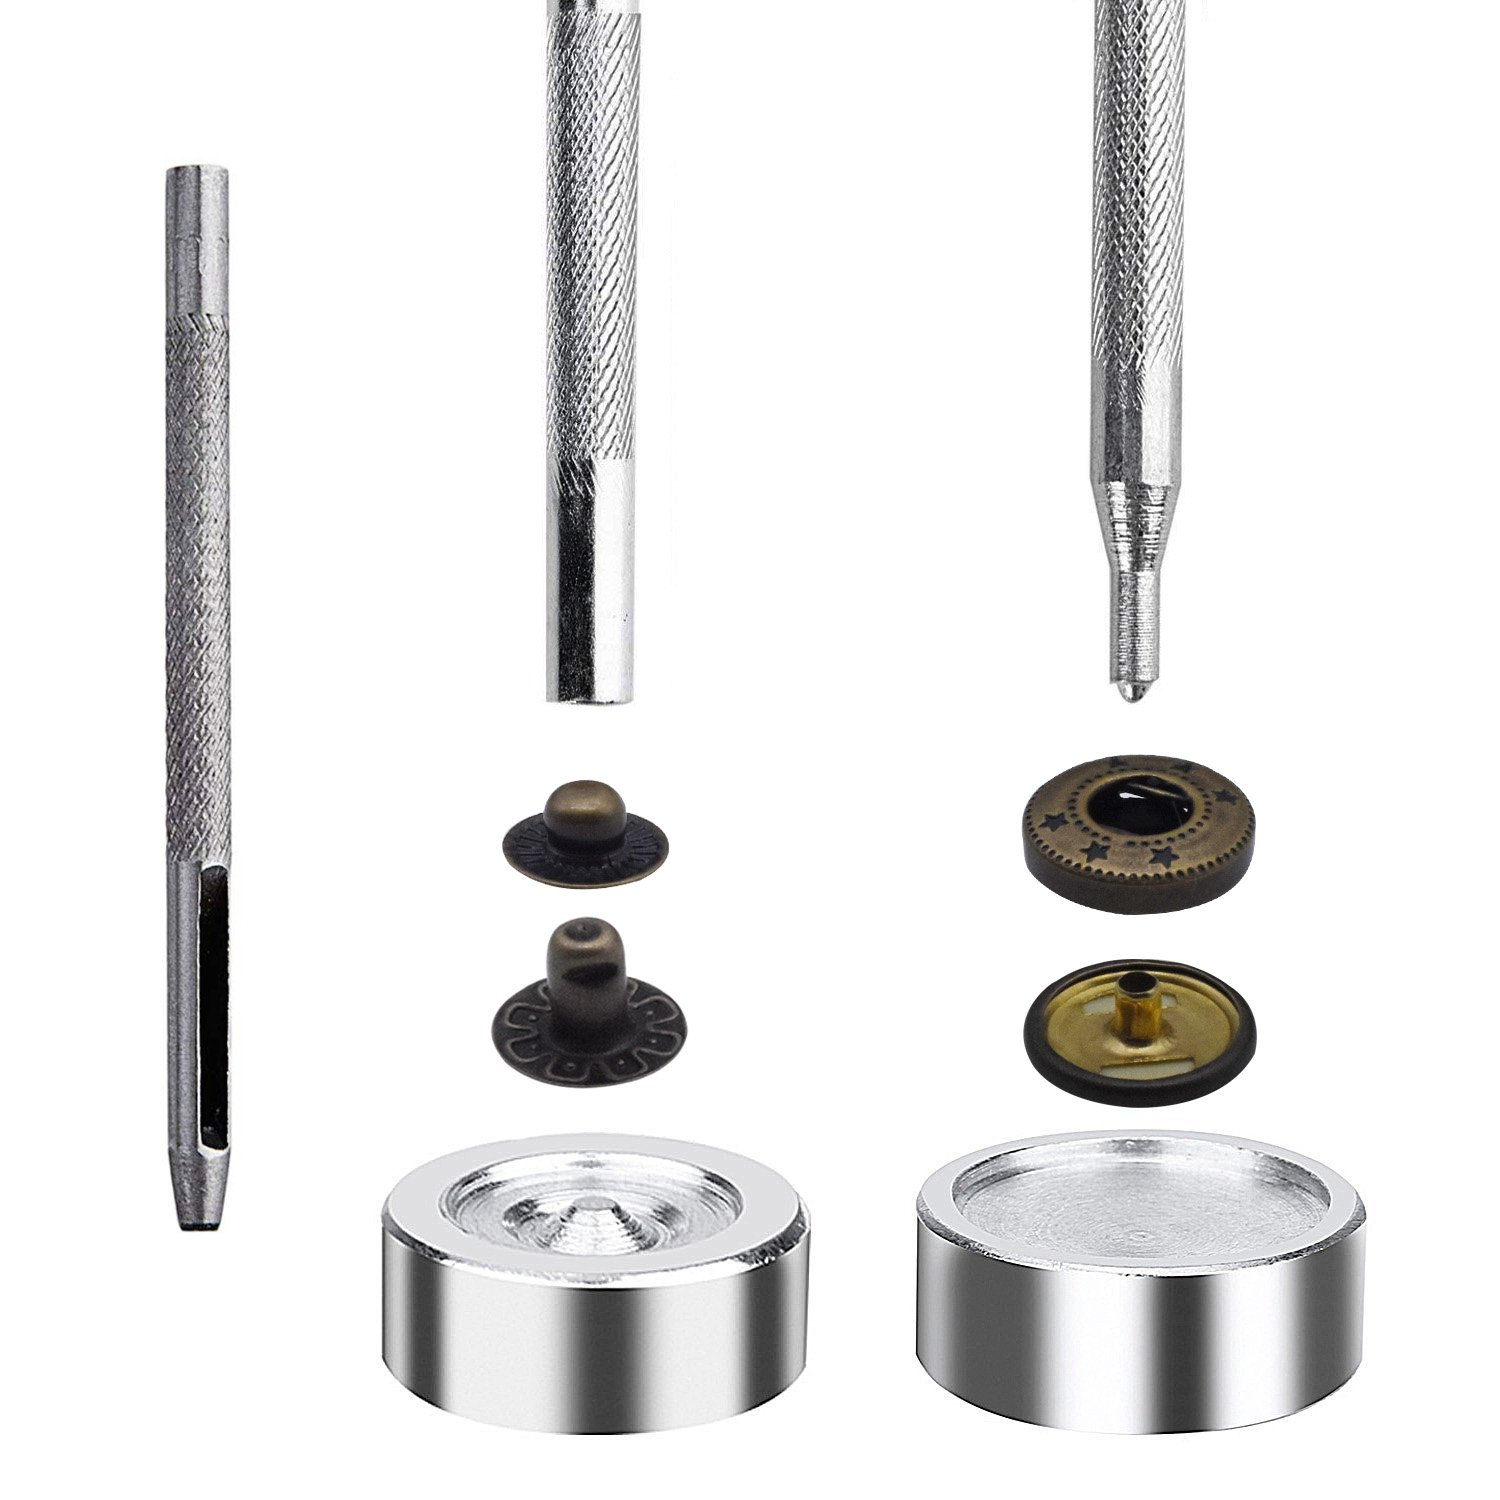 60 Set Snap Fasteners Kit for Leather//Clothing,3 Color Gunmetal Black,Silver and Bronze Snaps Button Press Studs with 4 Pieces Fixing Tools Caps Diameter 0.6 inch